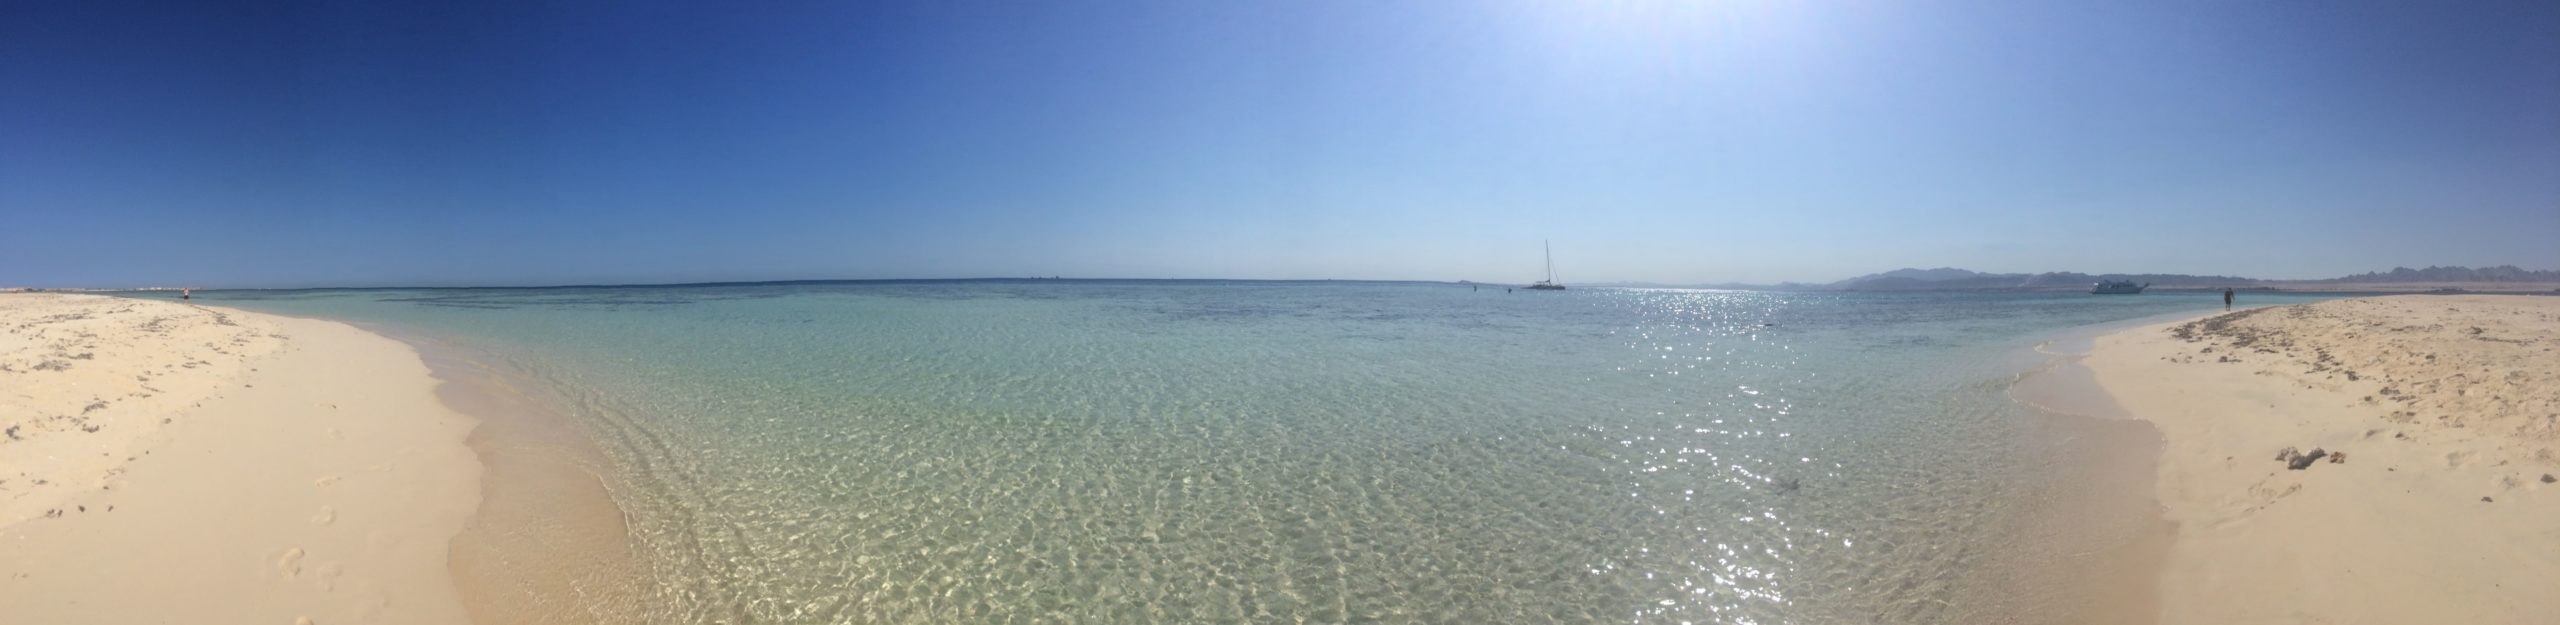 Panorma Rotes Meer